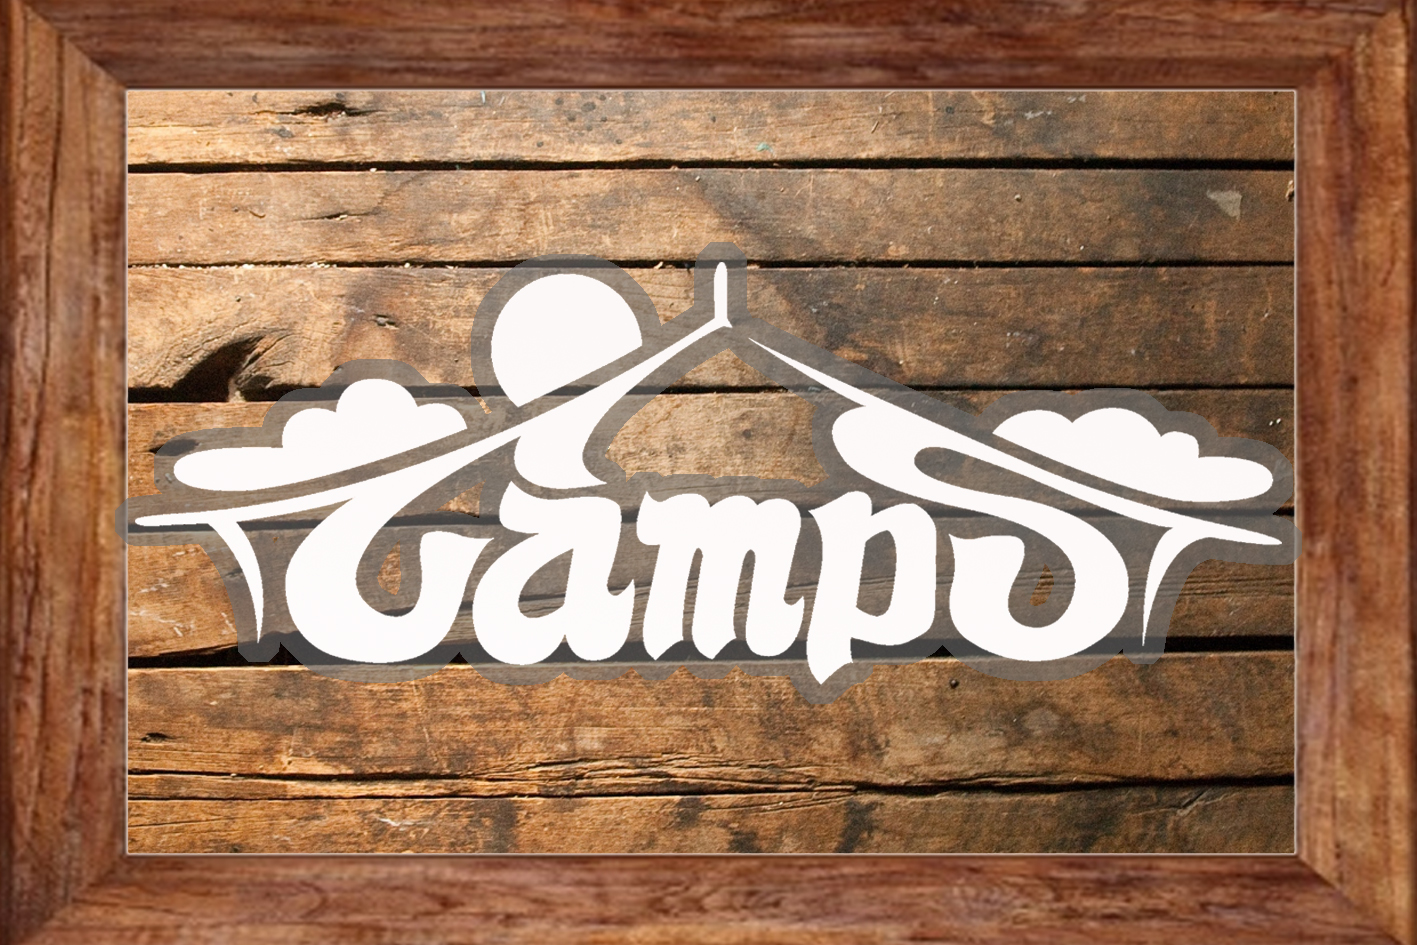 Campsstyle